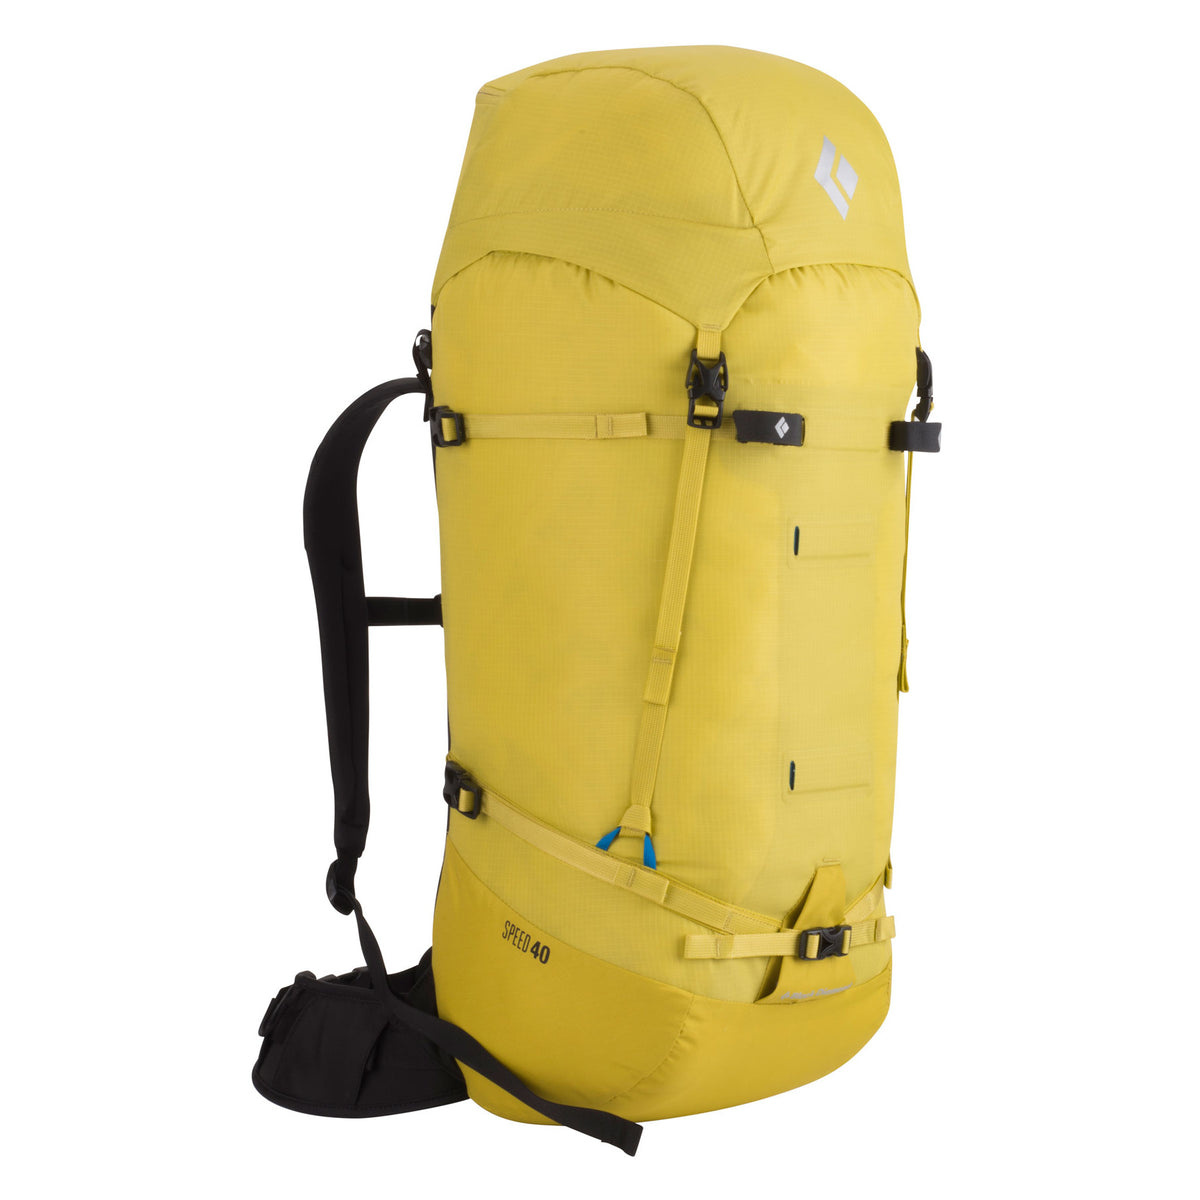 Black Diamond Speed 40 backpack, front/side view in Yellow colour